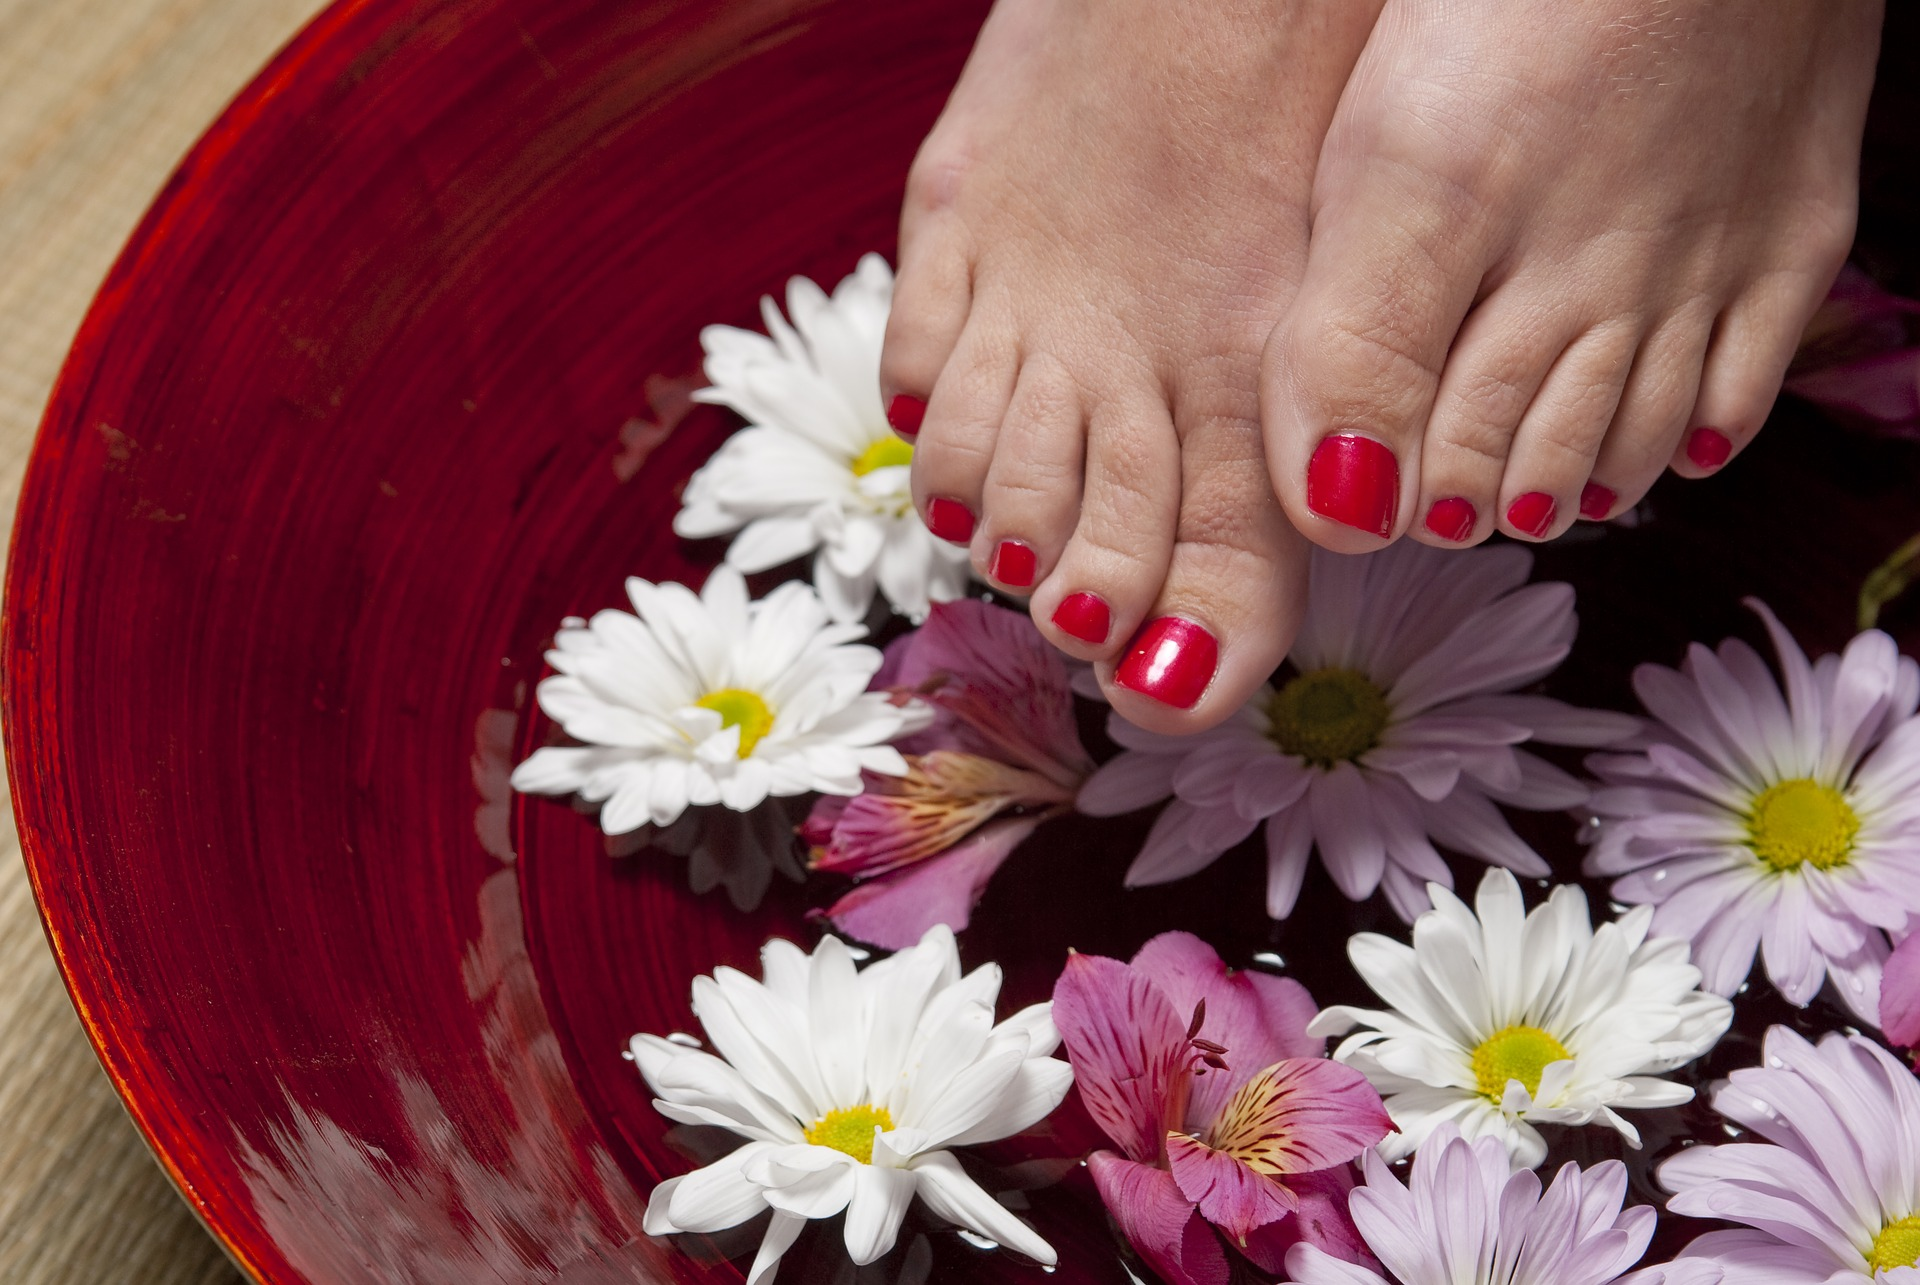 Tips for do it yourself manicure and pedicure gildshire tips for do it yourself manicure and pedicure solutioingenieria Choice Image